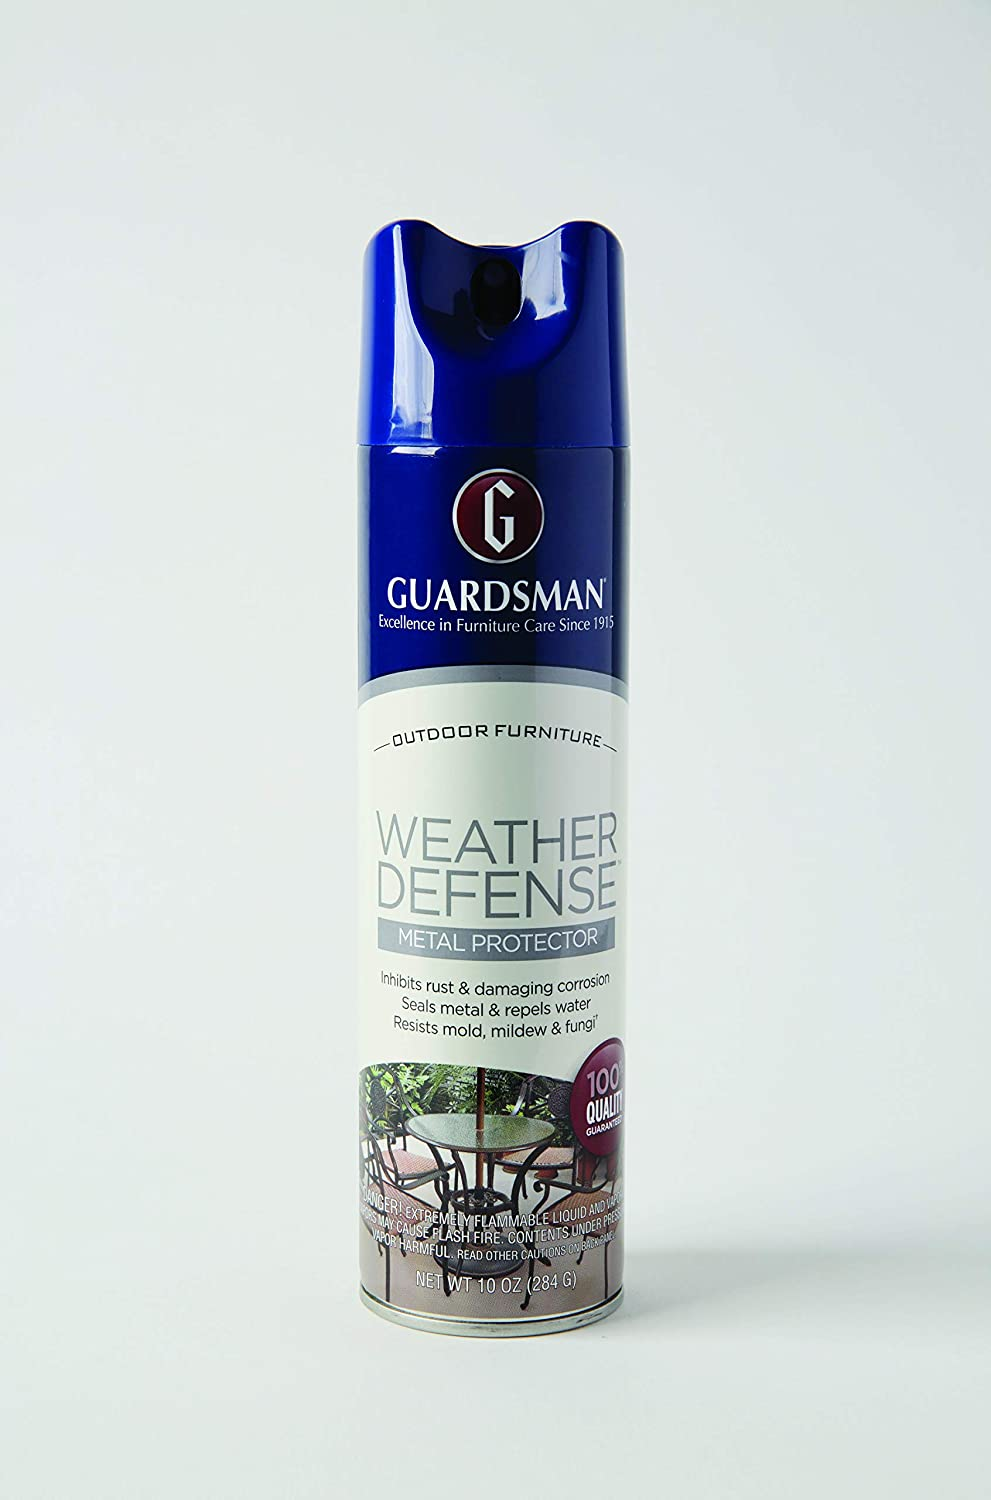 Guardsman 461800 Weather Defense Outdoor Metal Protector - Inhibits Rust and Water Stains, 10 Oz